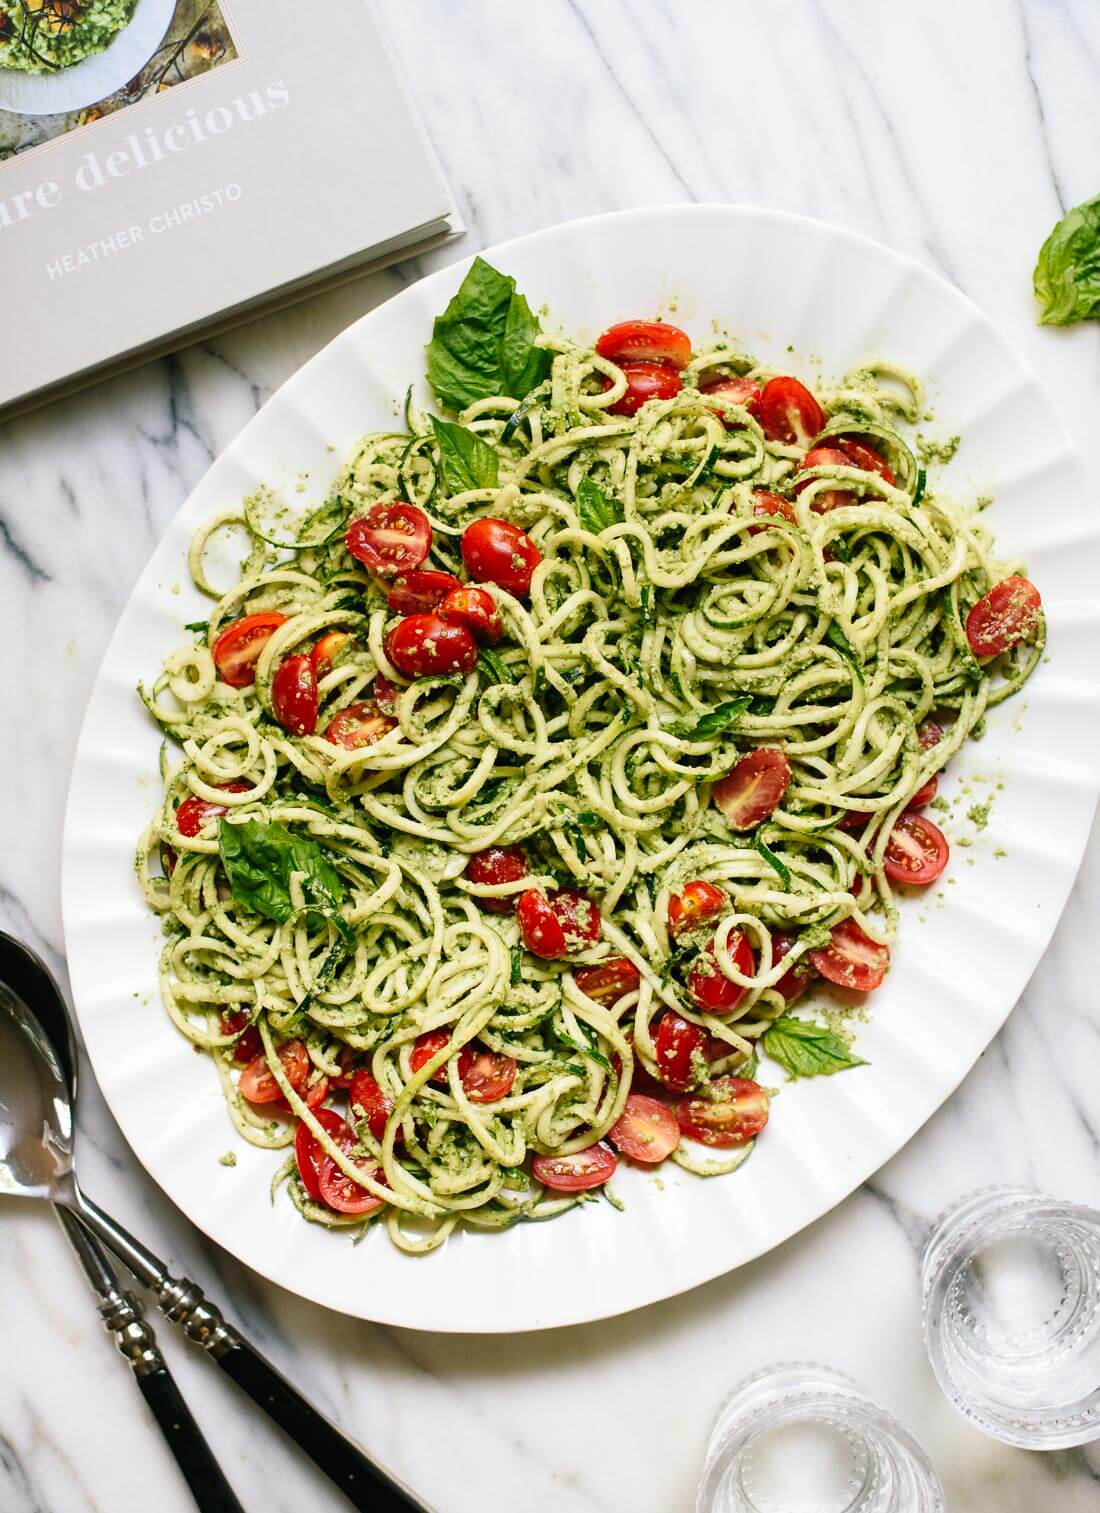 Fresh zucchini noodles with basil pesto and cherry tomatoes makes a light and healthy summer meal! cookieandkate.com